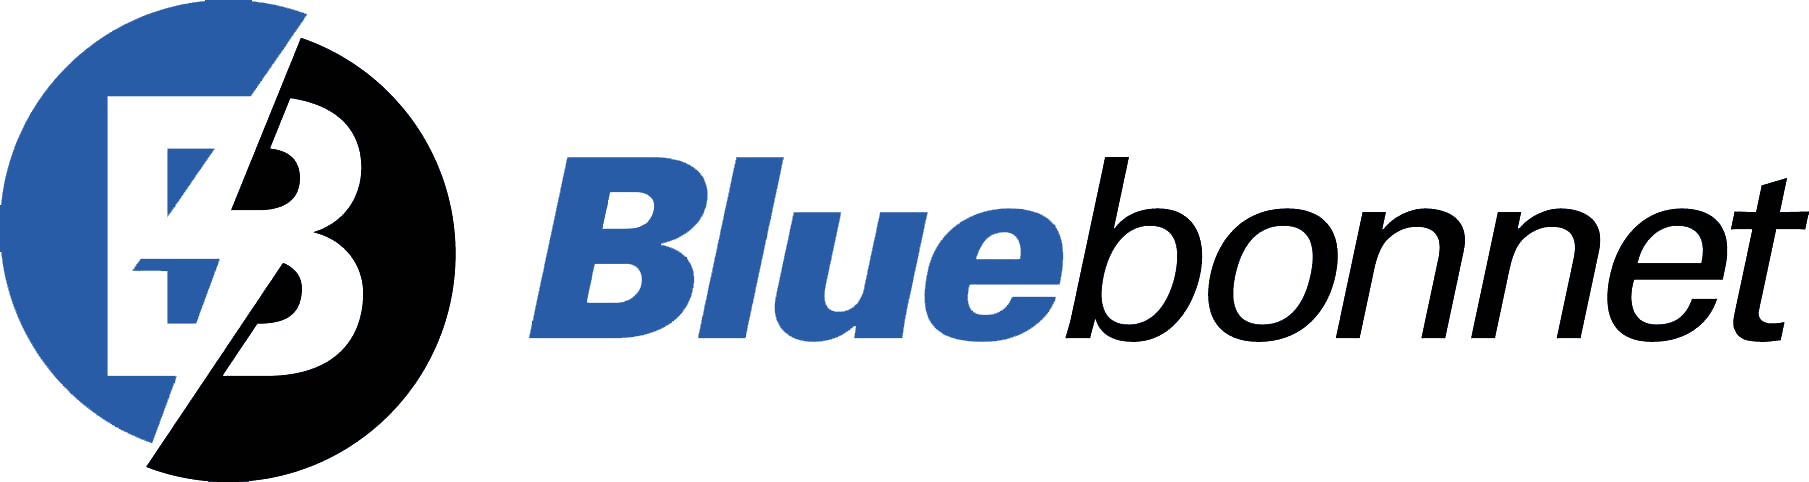 https://growthzonesitesprod.azureedge.net/wp-content/uploads/sites/964/2020/02/bluebonnet-logo-horizontal-long.png